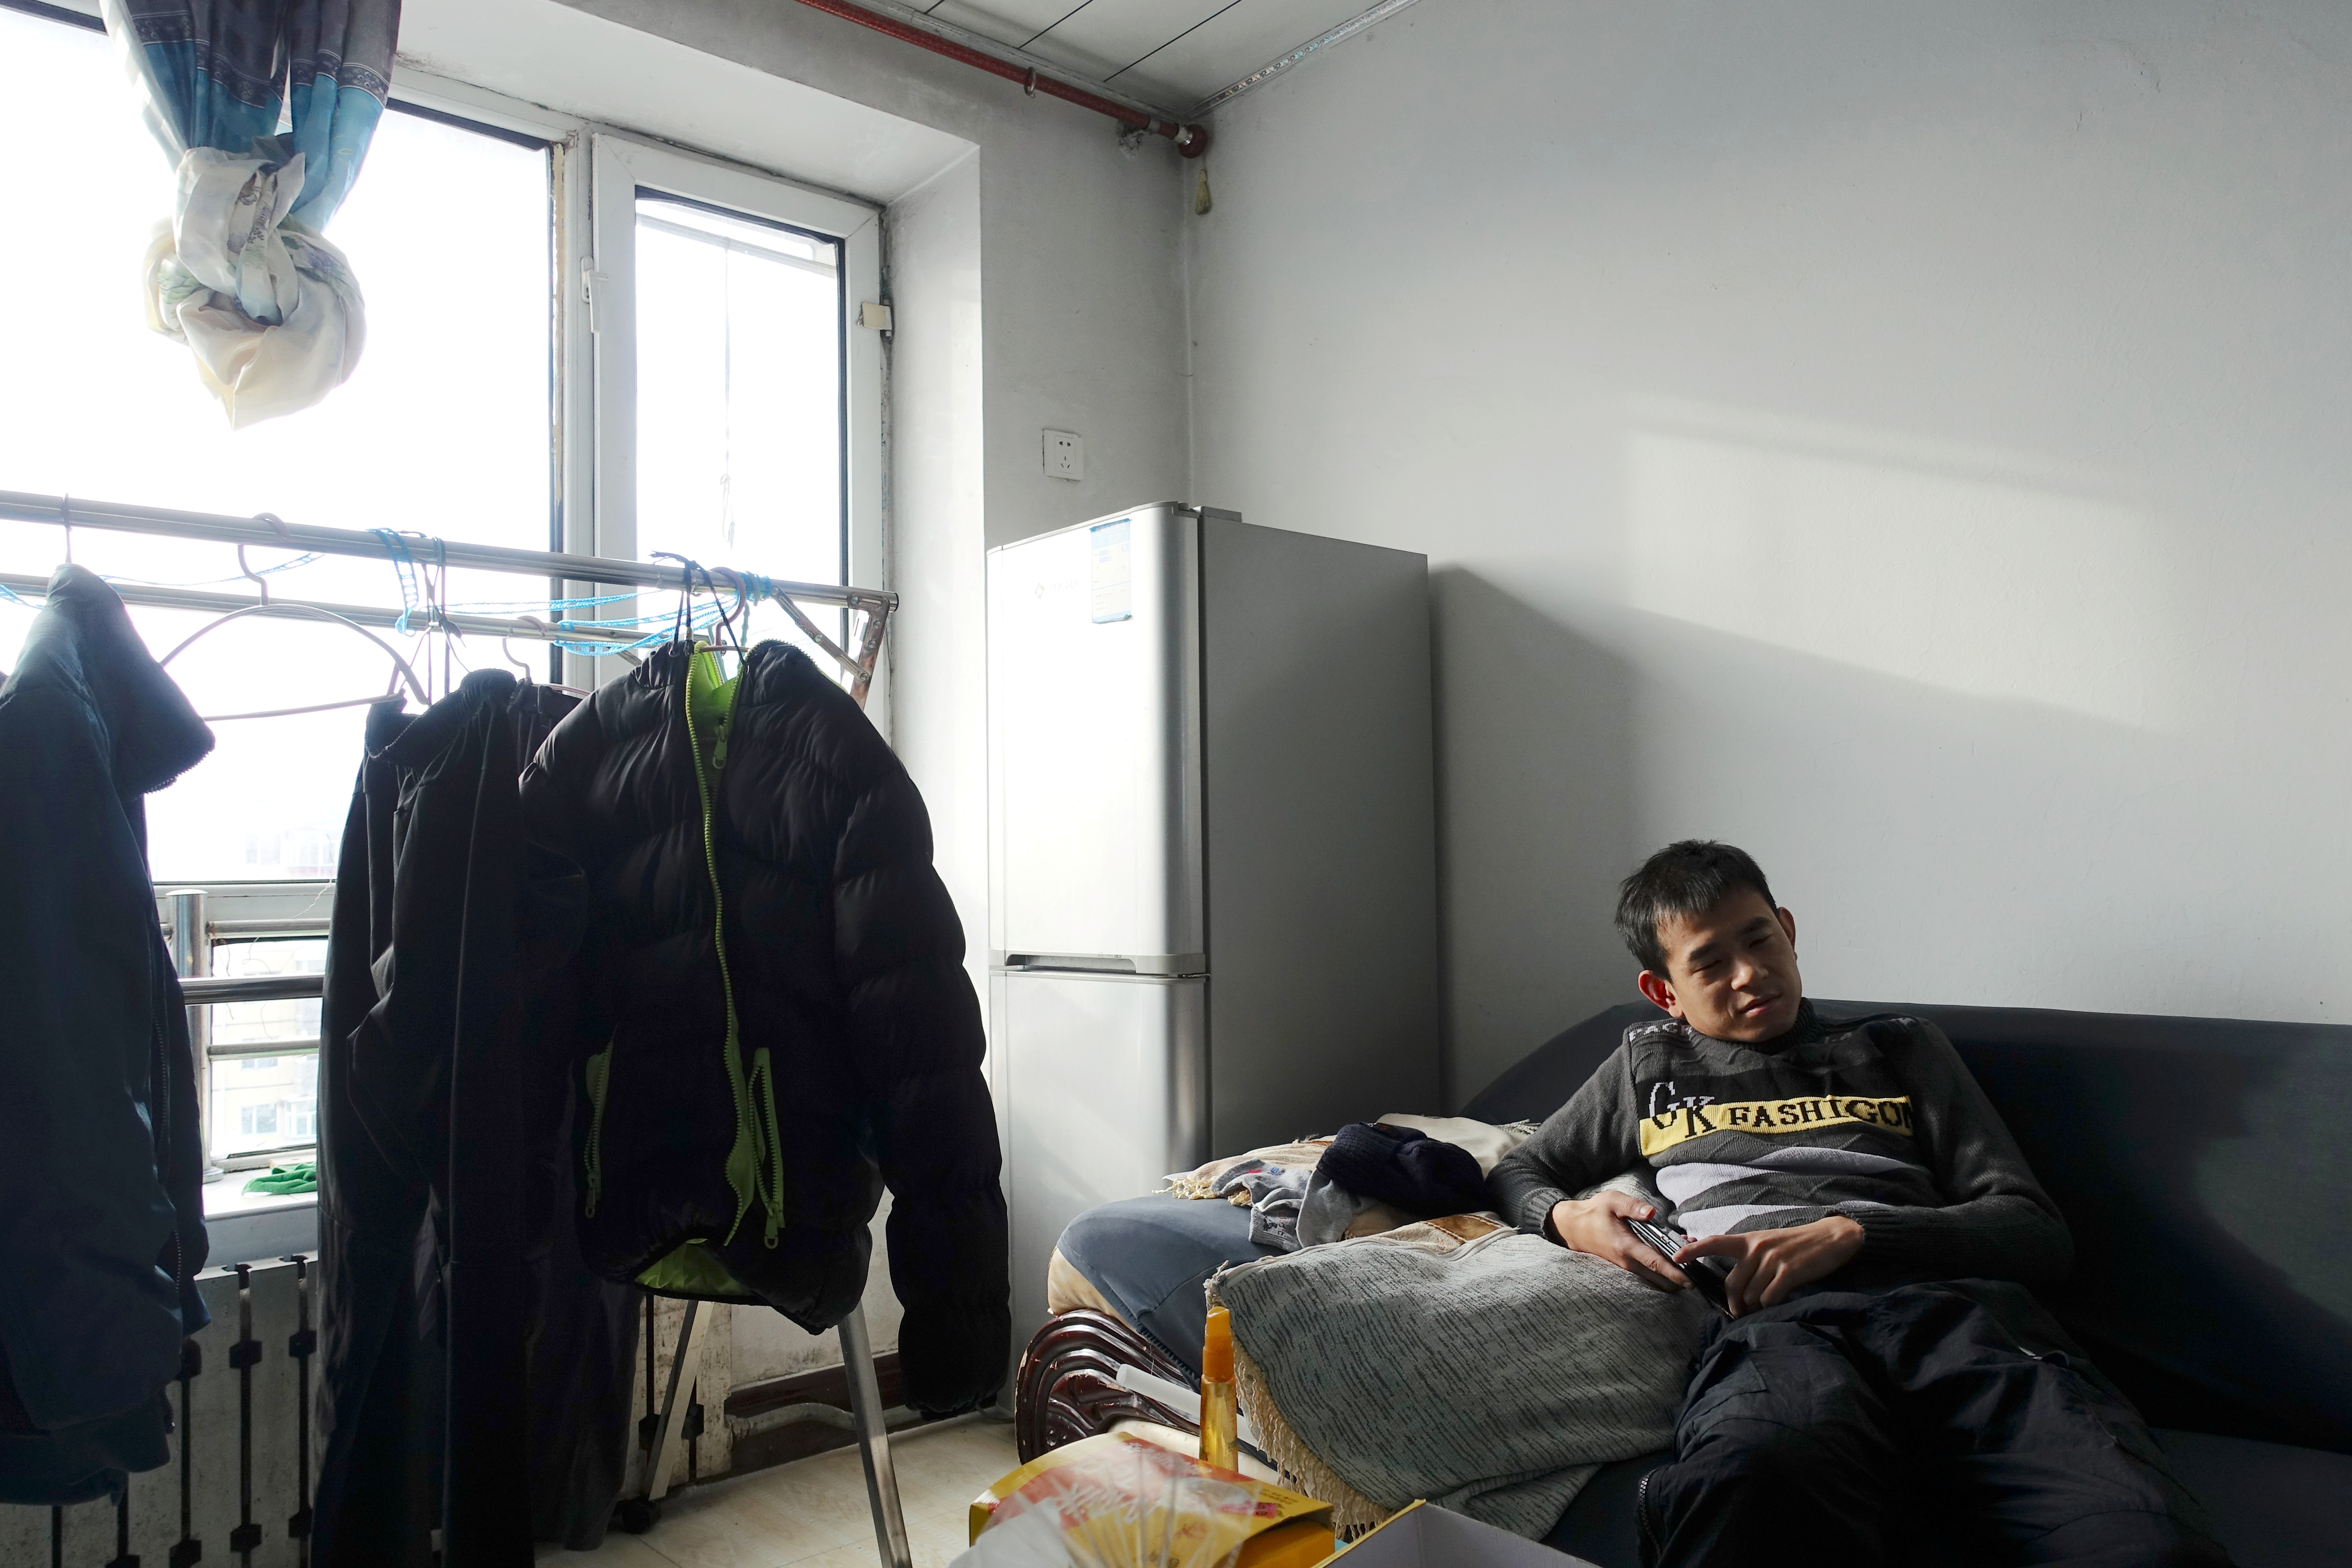 With nothing to lose, loners build future in Chinas hollowed-out north